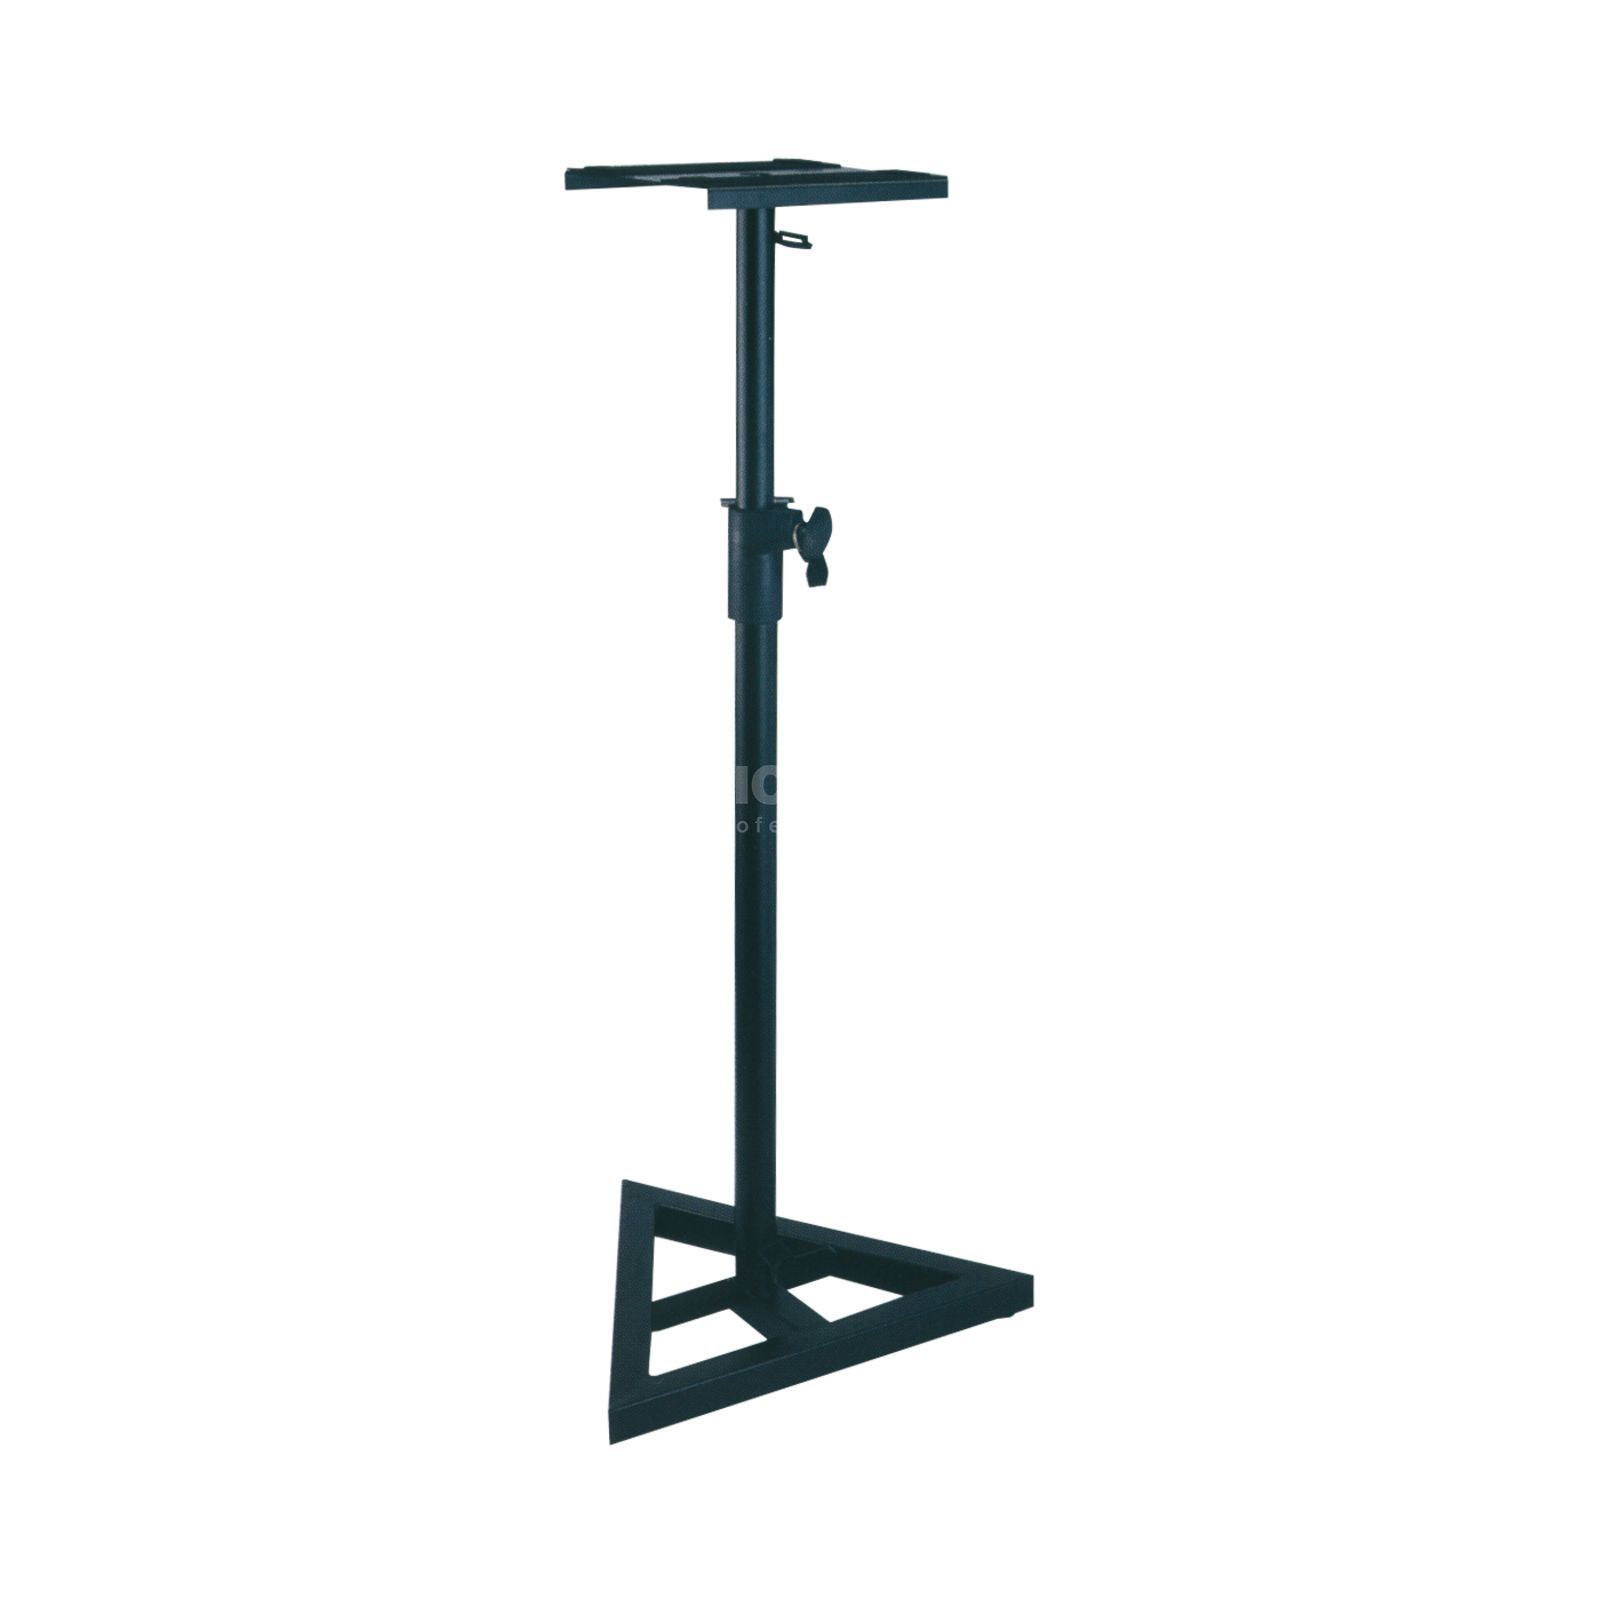 Fame DB 039 Monitorstand adjustable 930-1370mm Produktbillede